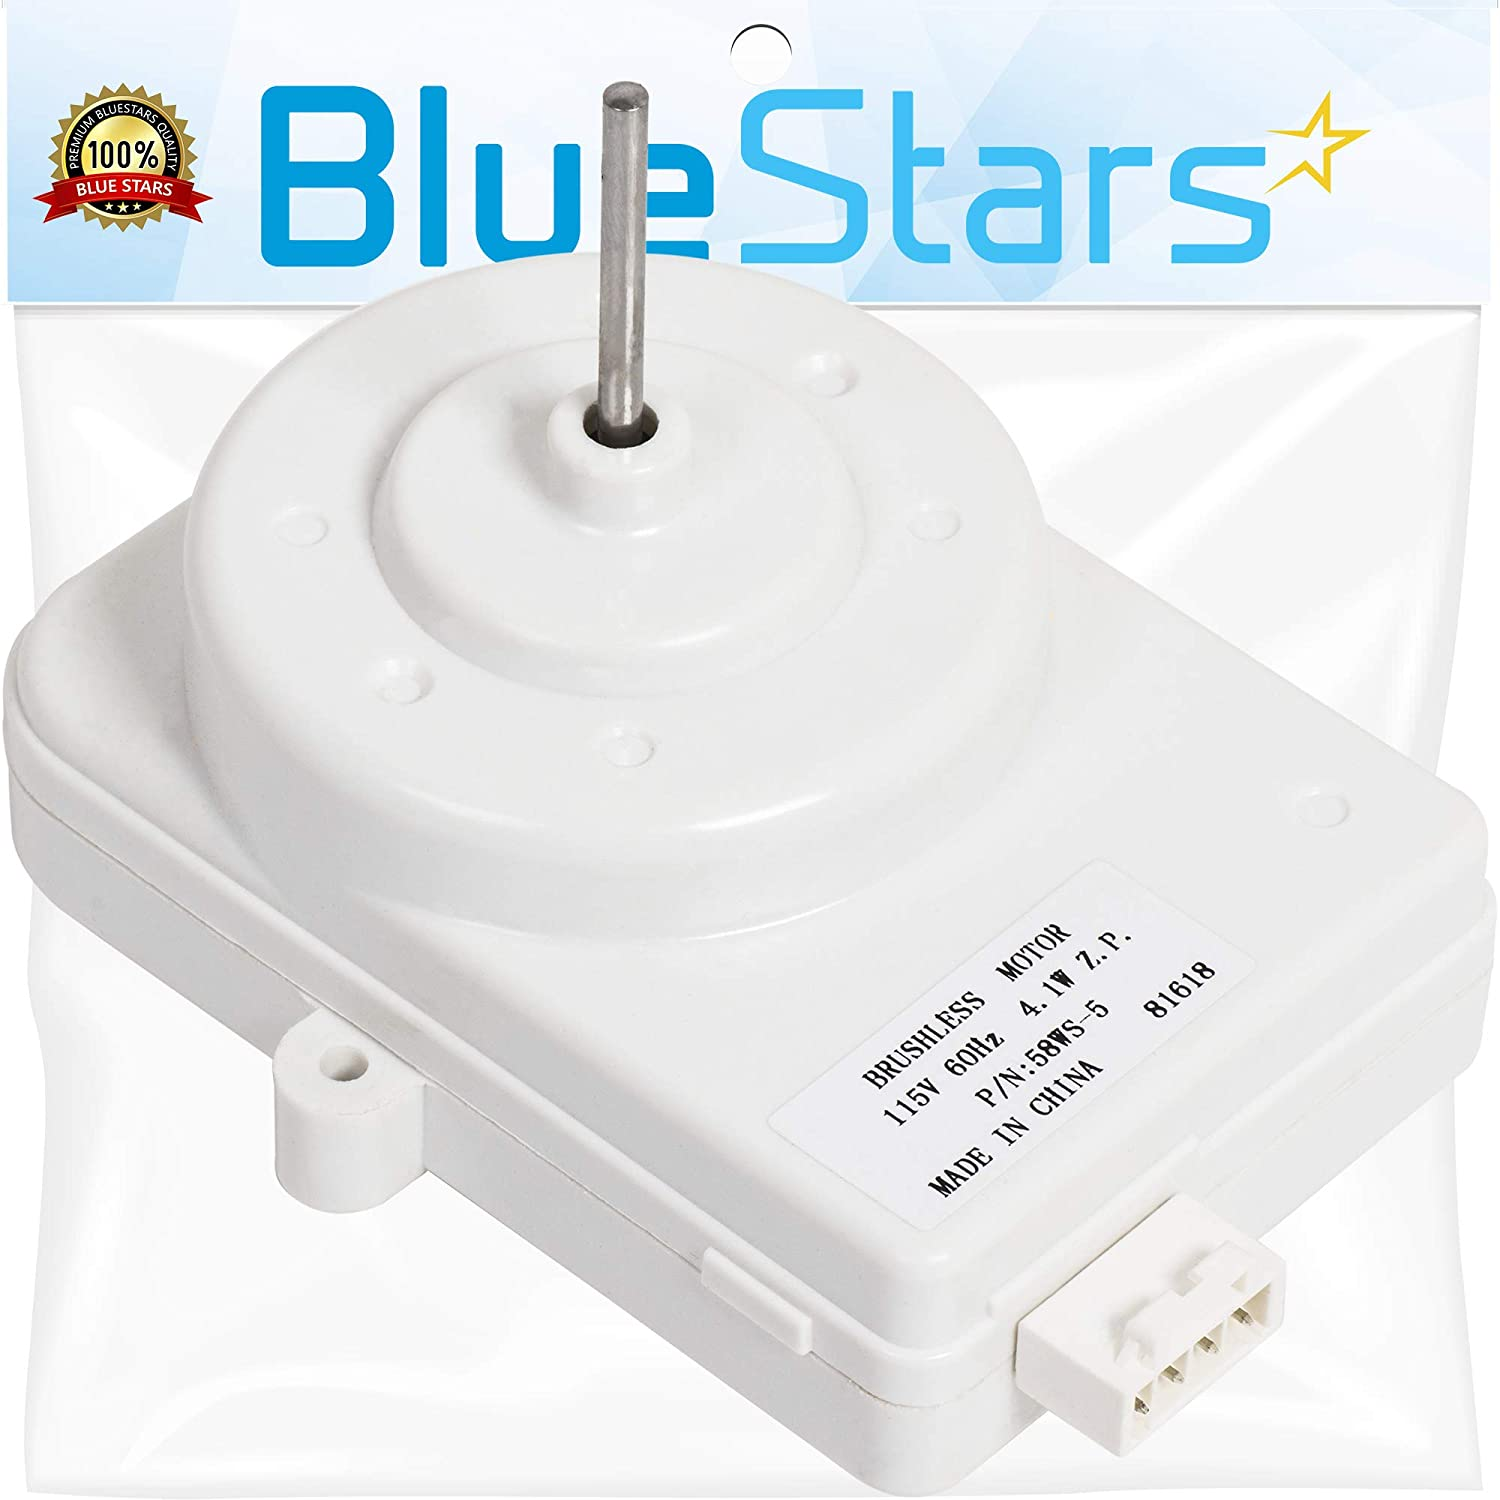 Ultra Durable 2188874 Refrigerator Condenser Fan Motor Replacement Part by Blue Stars - Exact Fit for Whirlpool Kenmore KitchenAid Refrigerators - Replaces 2188875 WP2188874 PS11739140